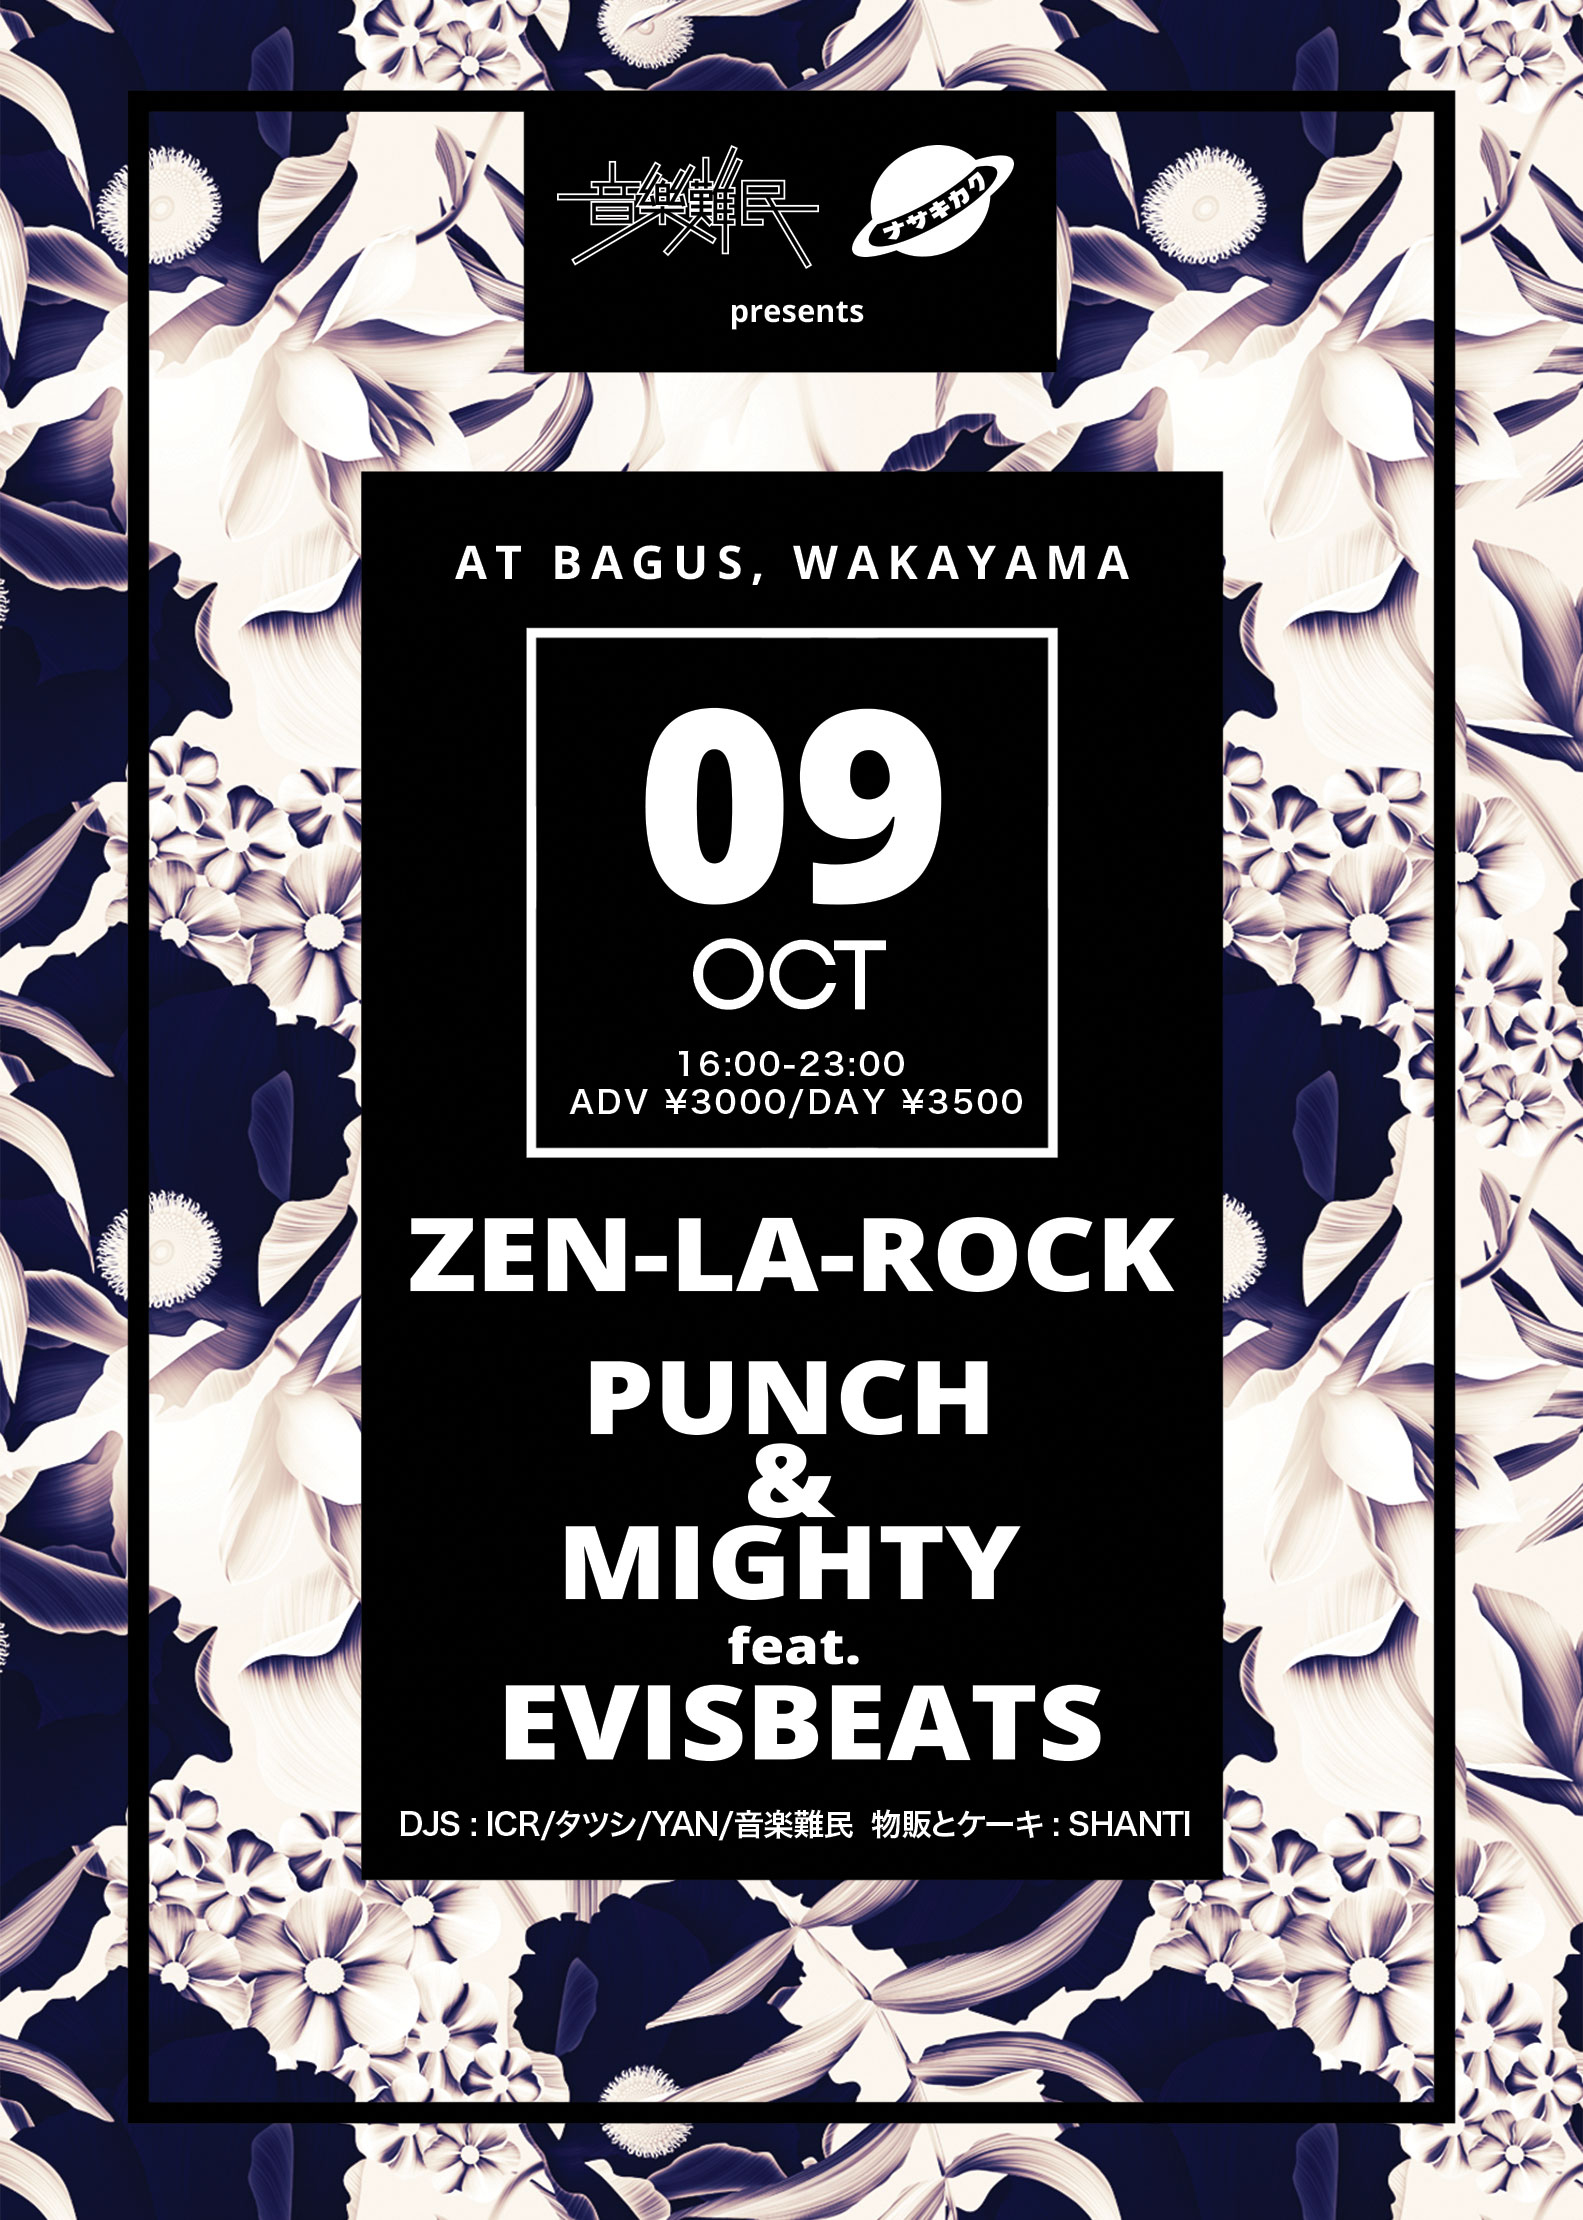 2016/10/09 音楽難民xナサキカク ZEN-LA-ROCK PUNCH&MIGHTYとEVISBEATS